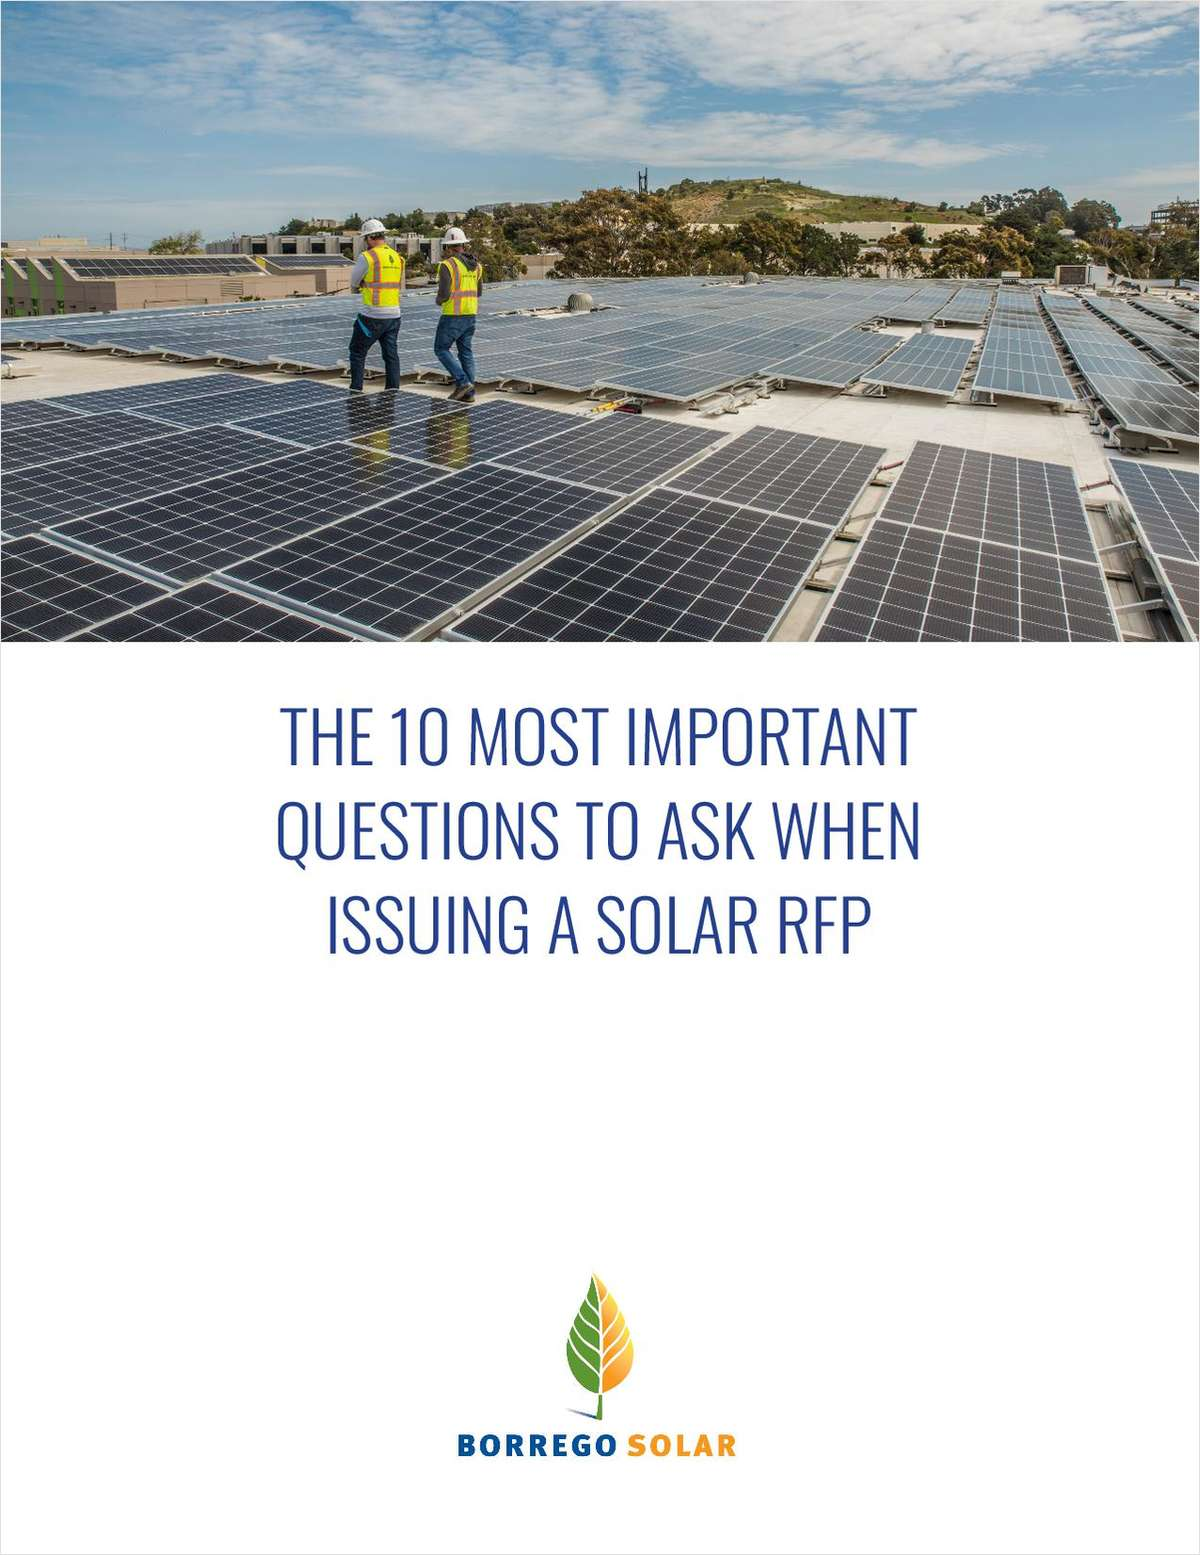 The 10 Most Important Questions to Ask when Issuing a Solar RFP